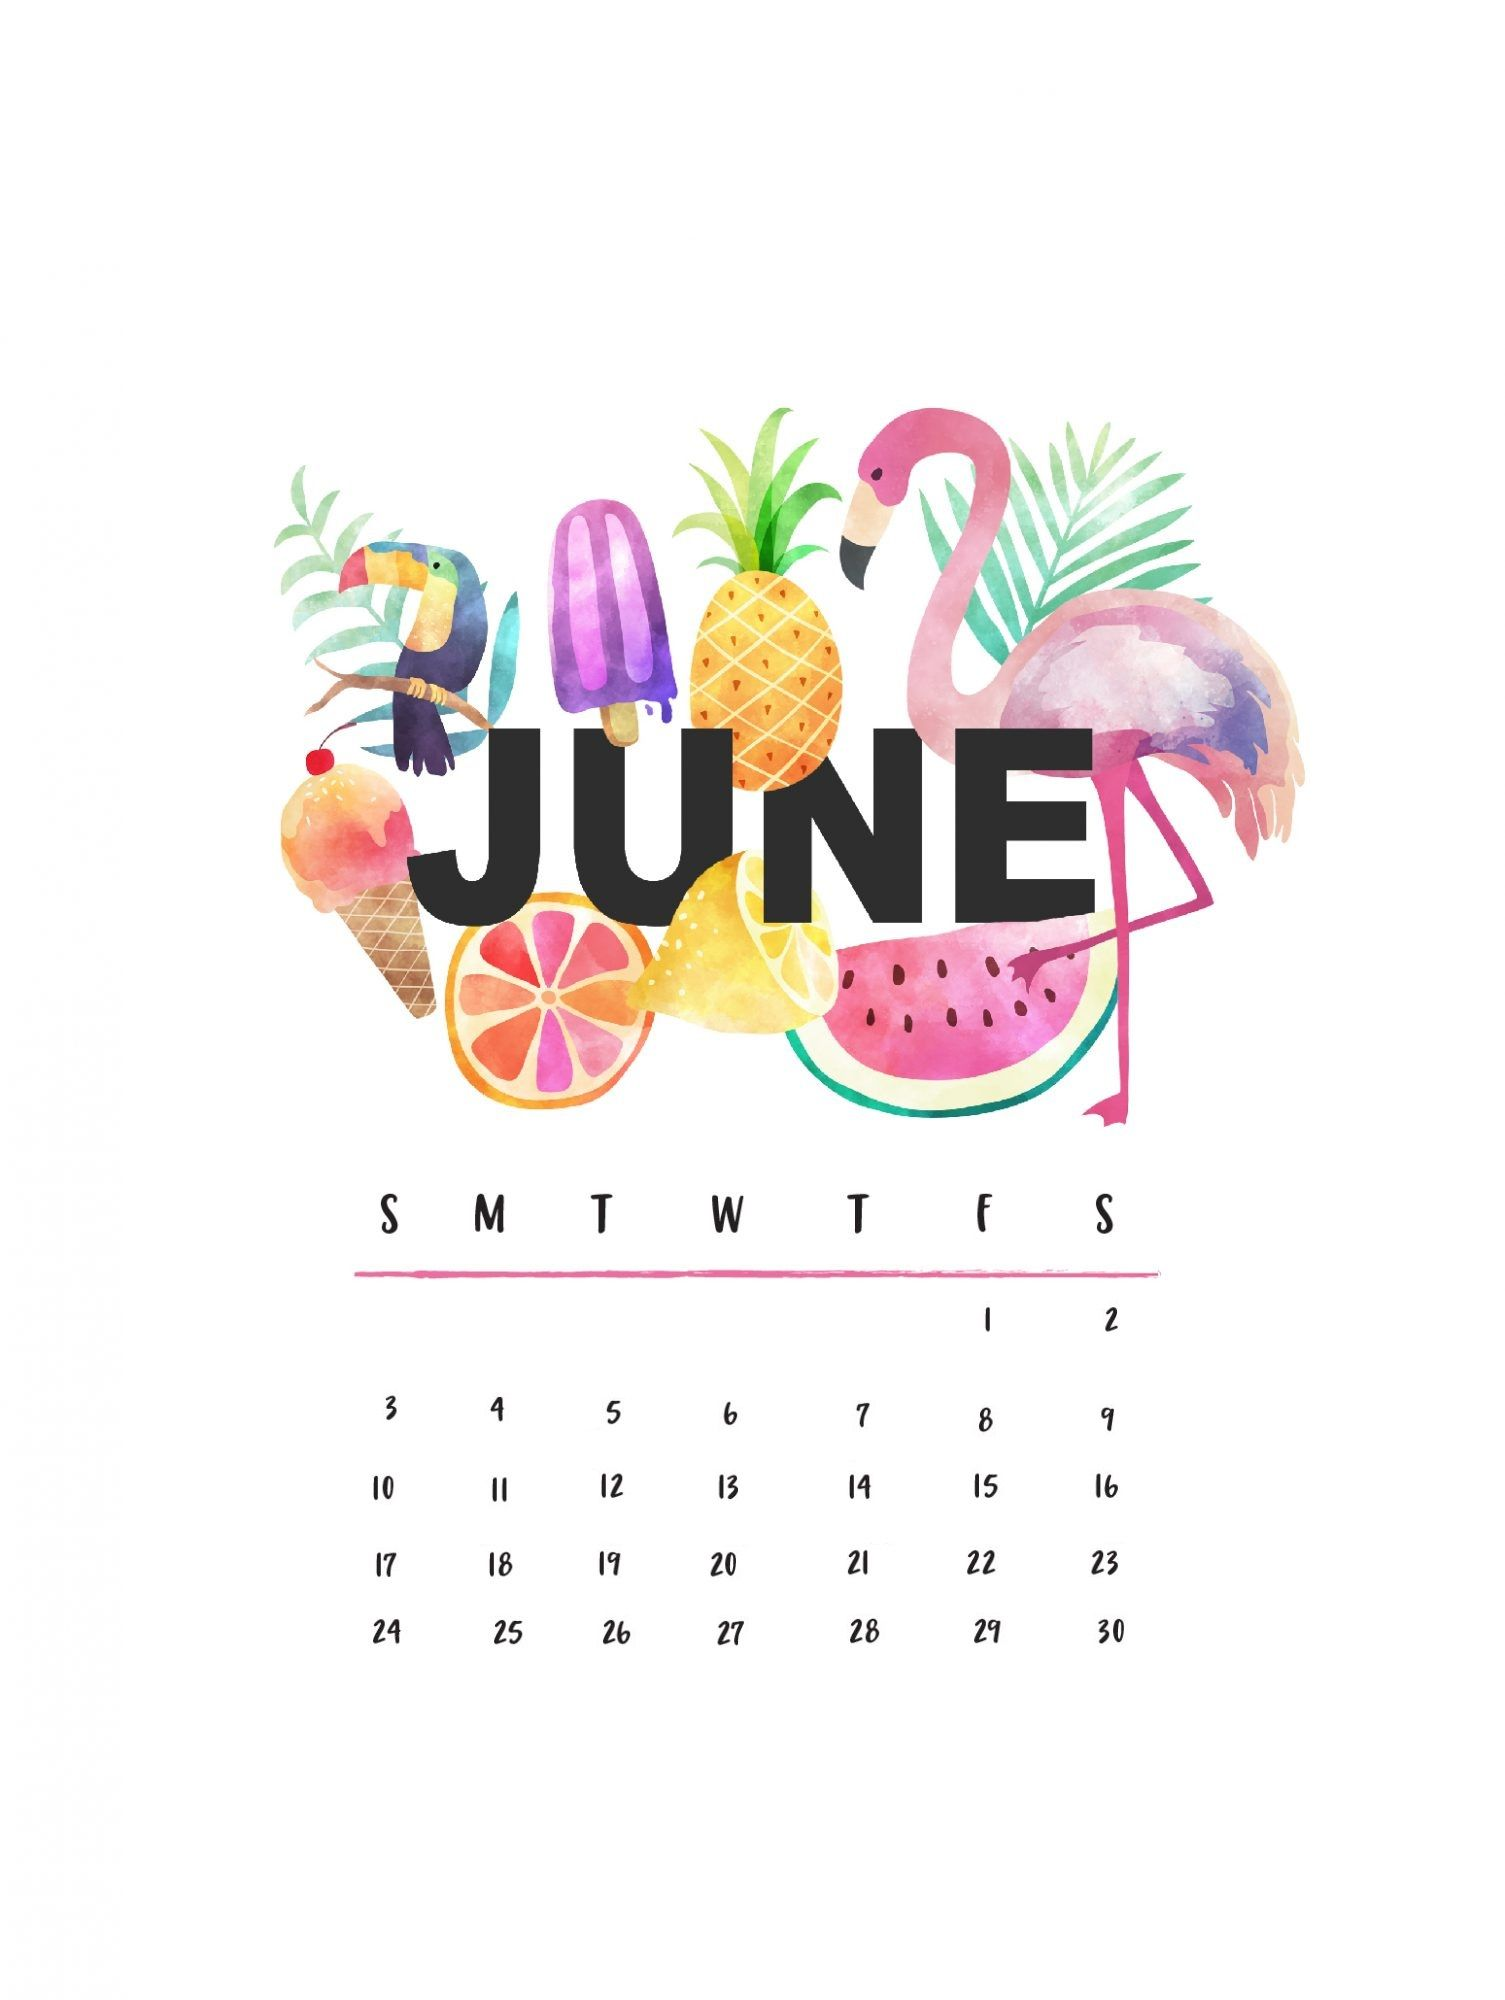 June 2019 iPhone Calendar HD Wallpaper